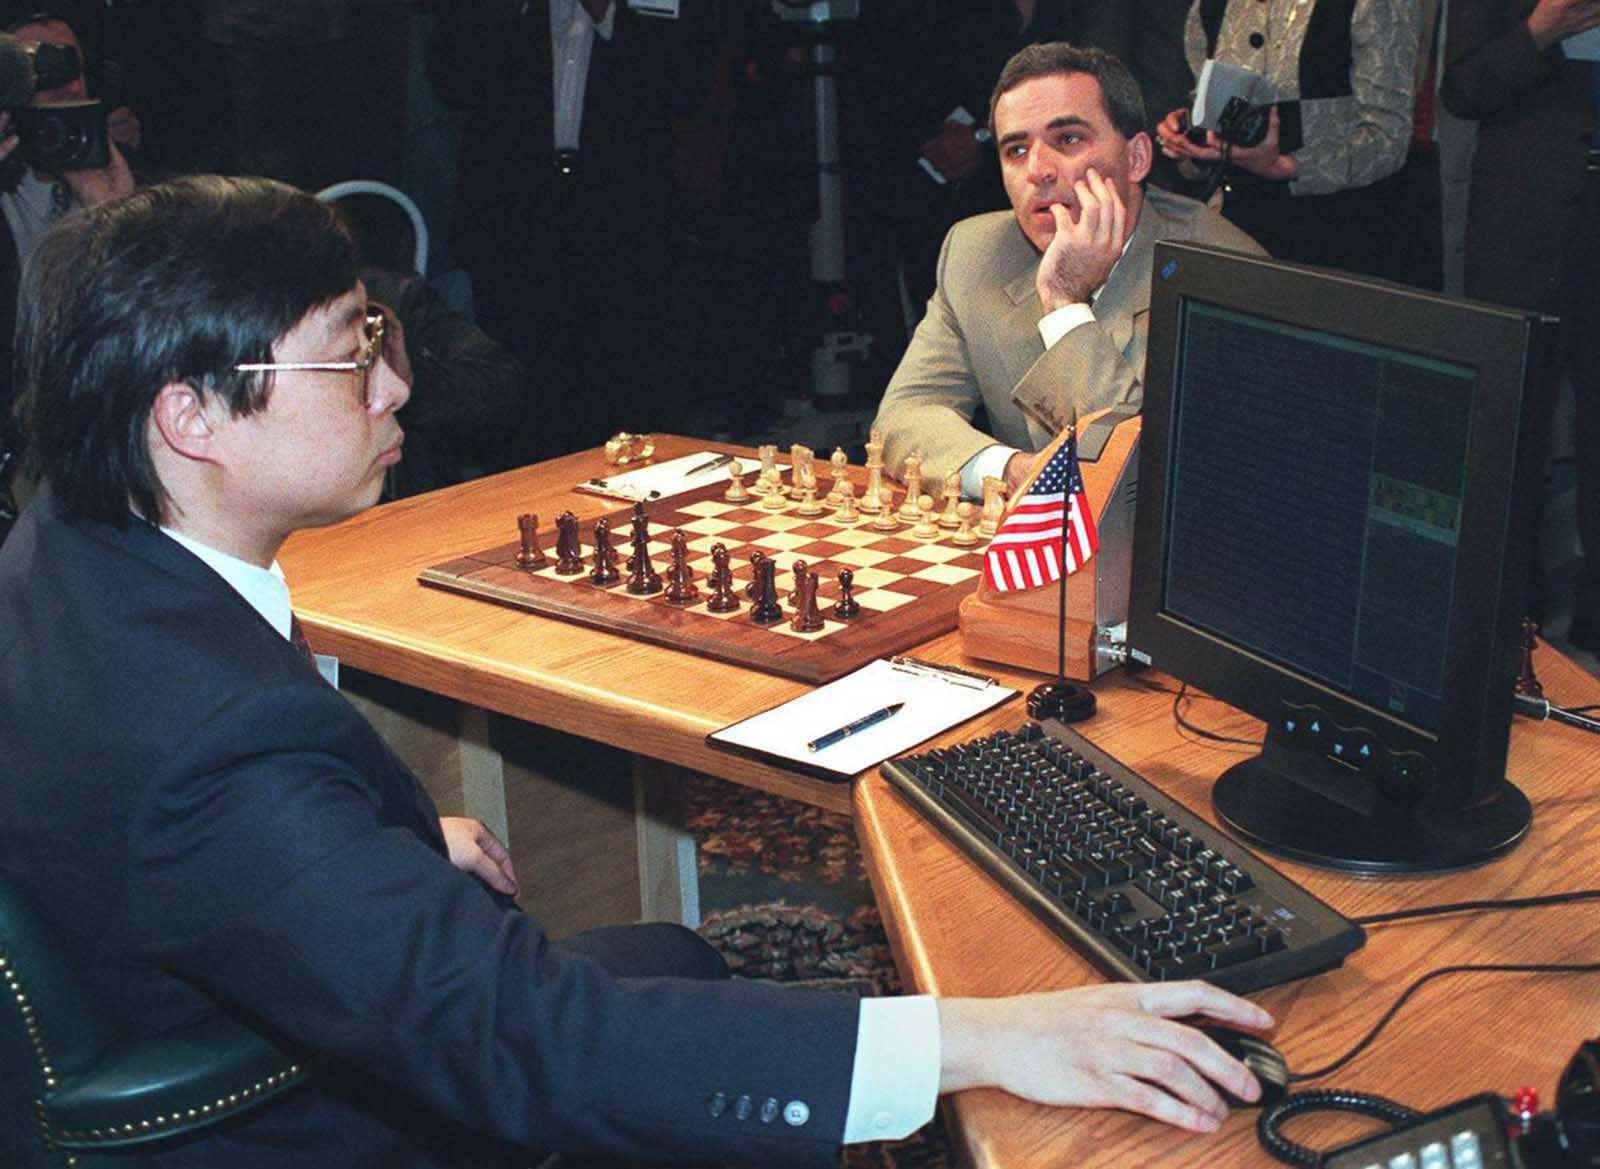 Feng-hsiung Hsu prepares Deep Blue before Kasparov makes his opening move in the first of six games.